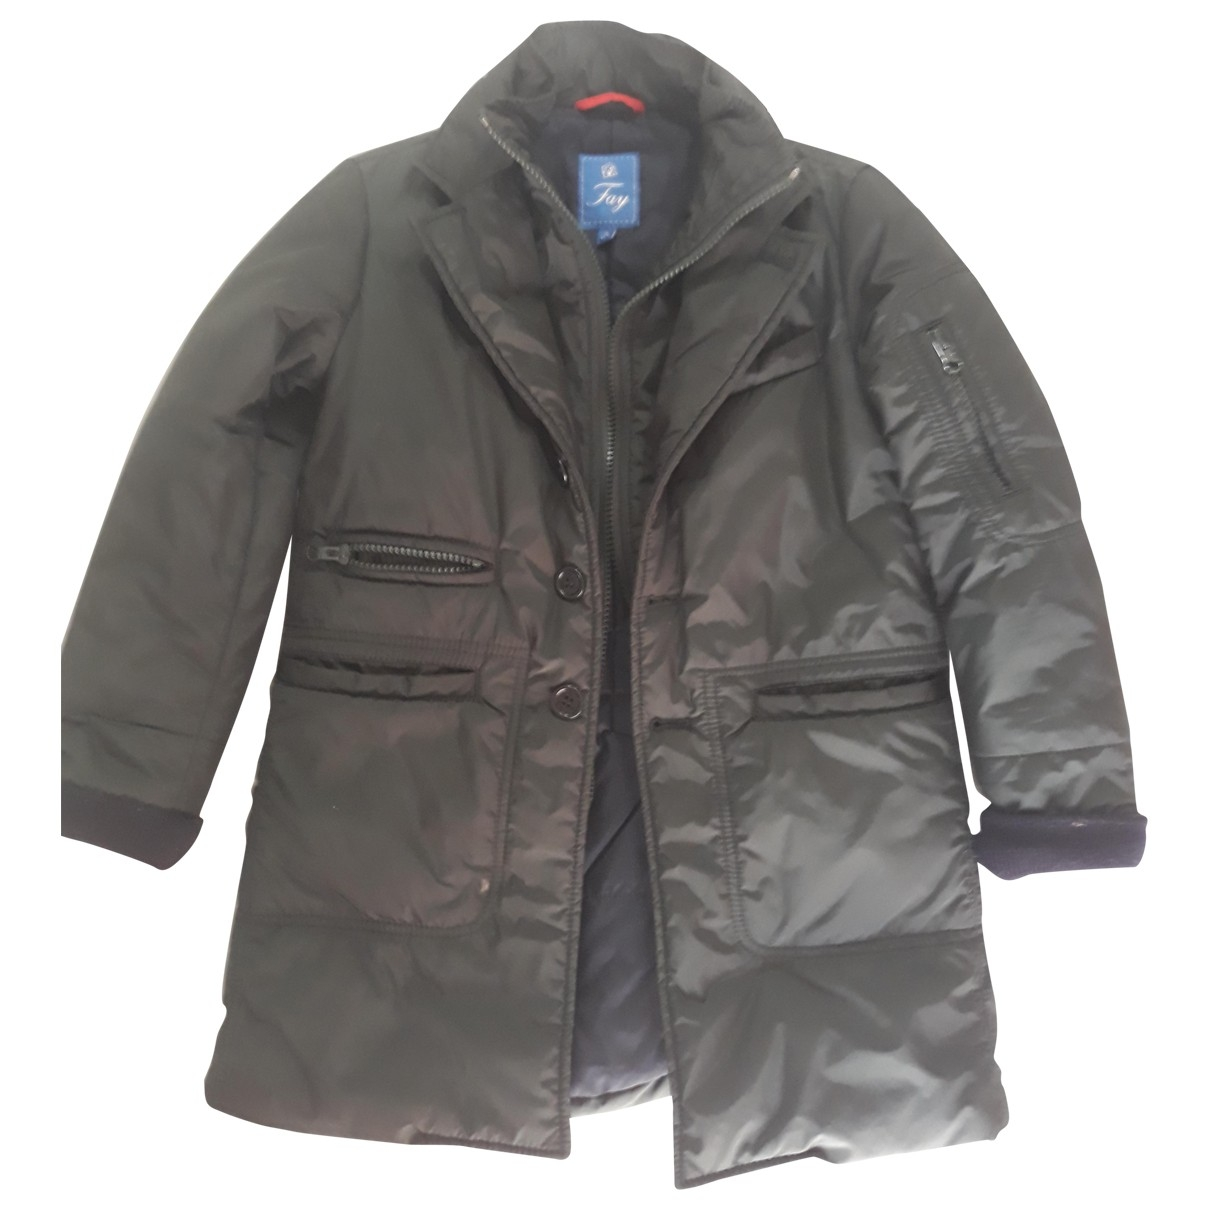 Fay \N Green jacket & coat for Kids 5 years - up to 108cm FR